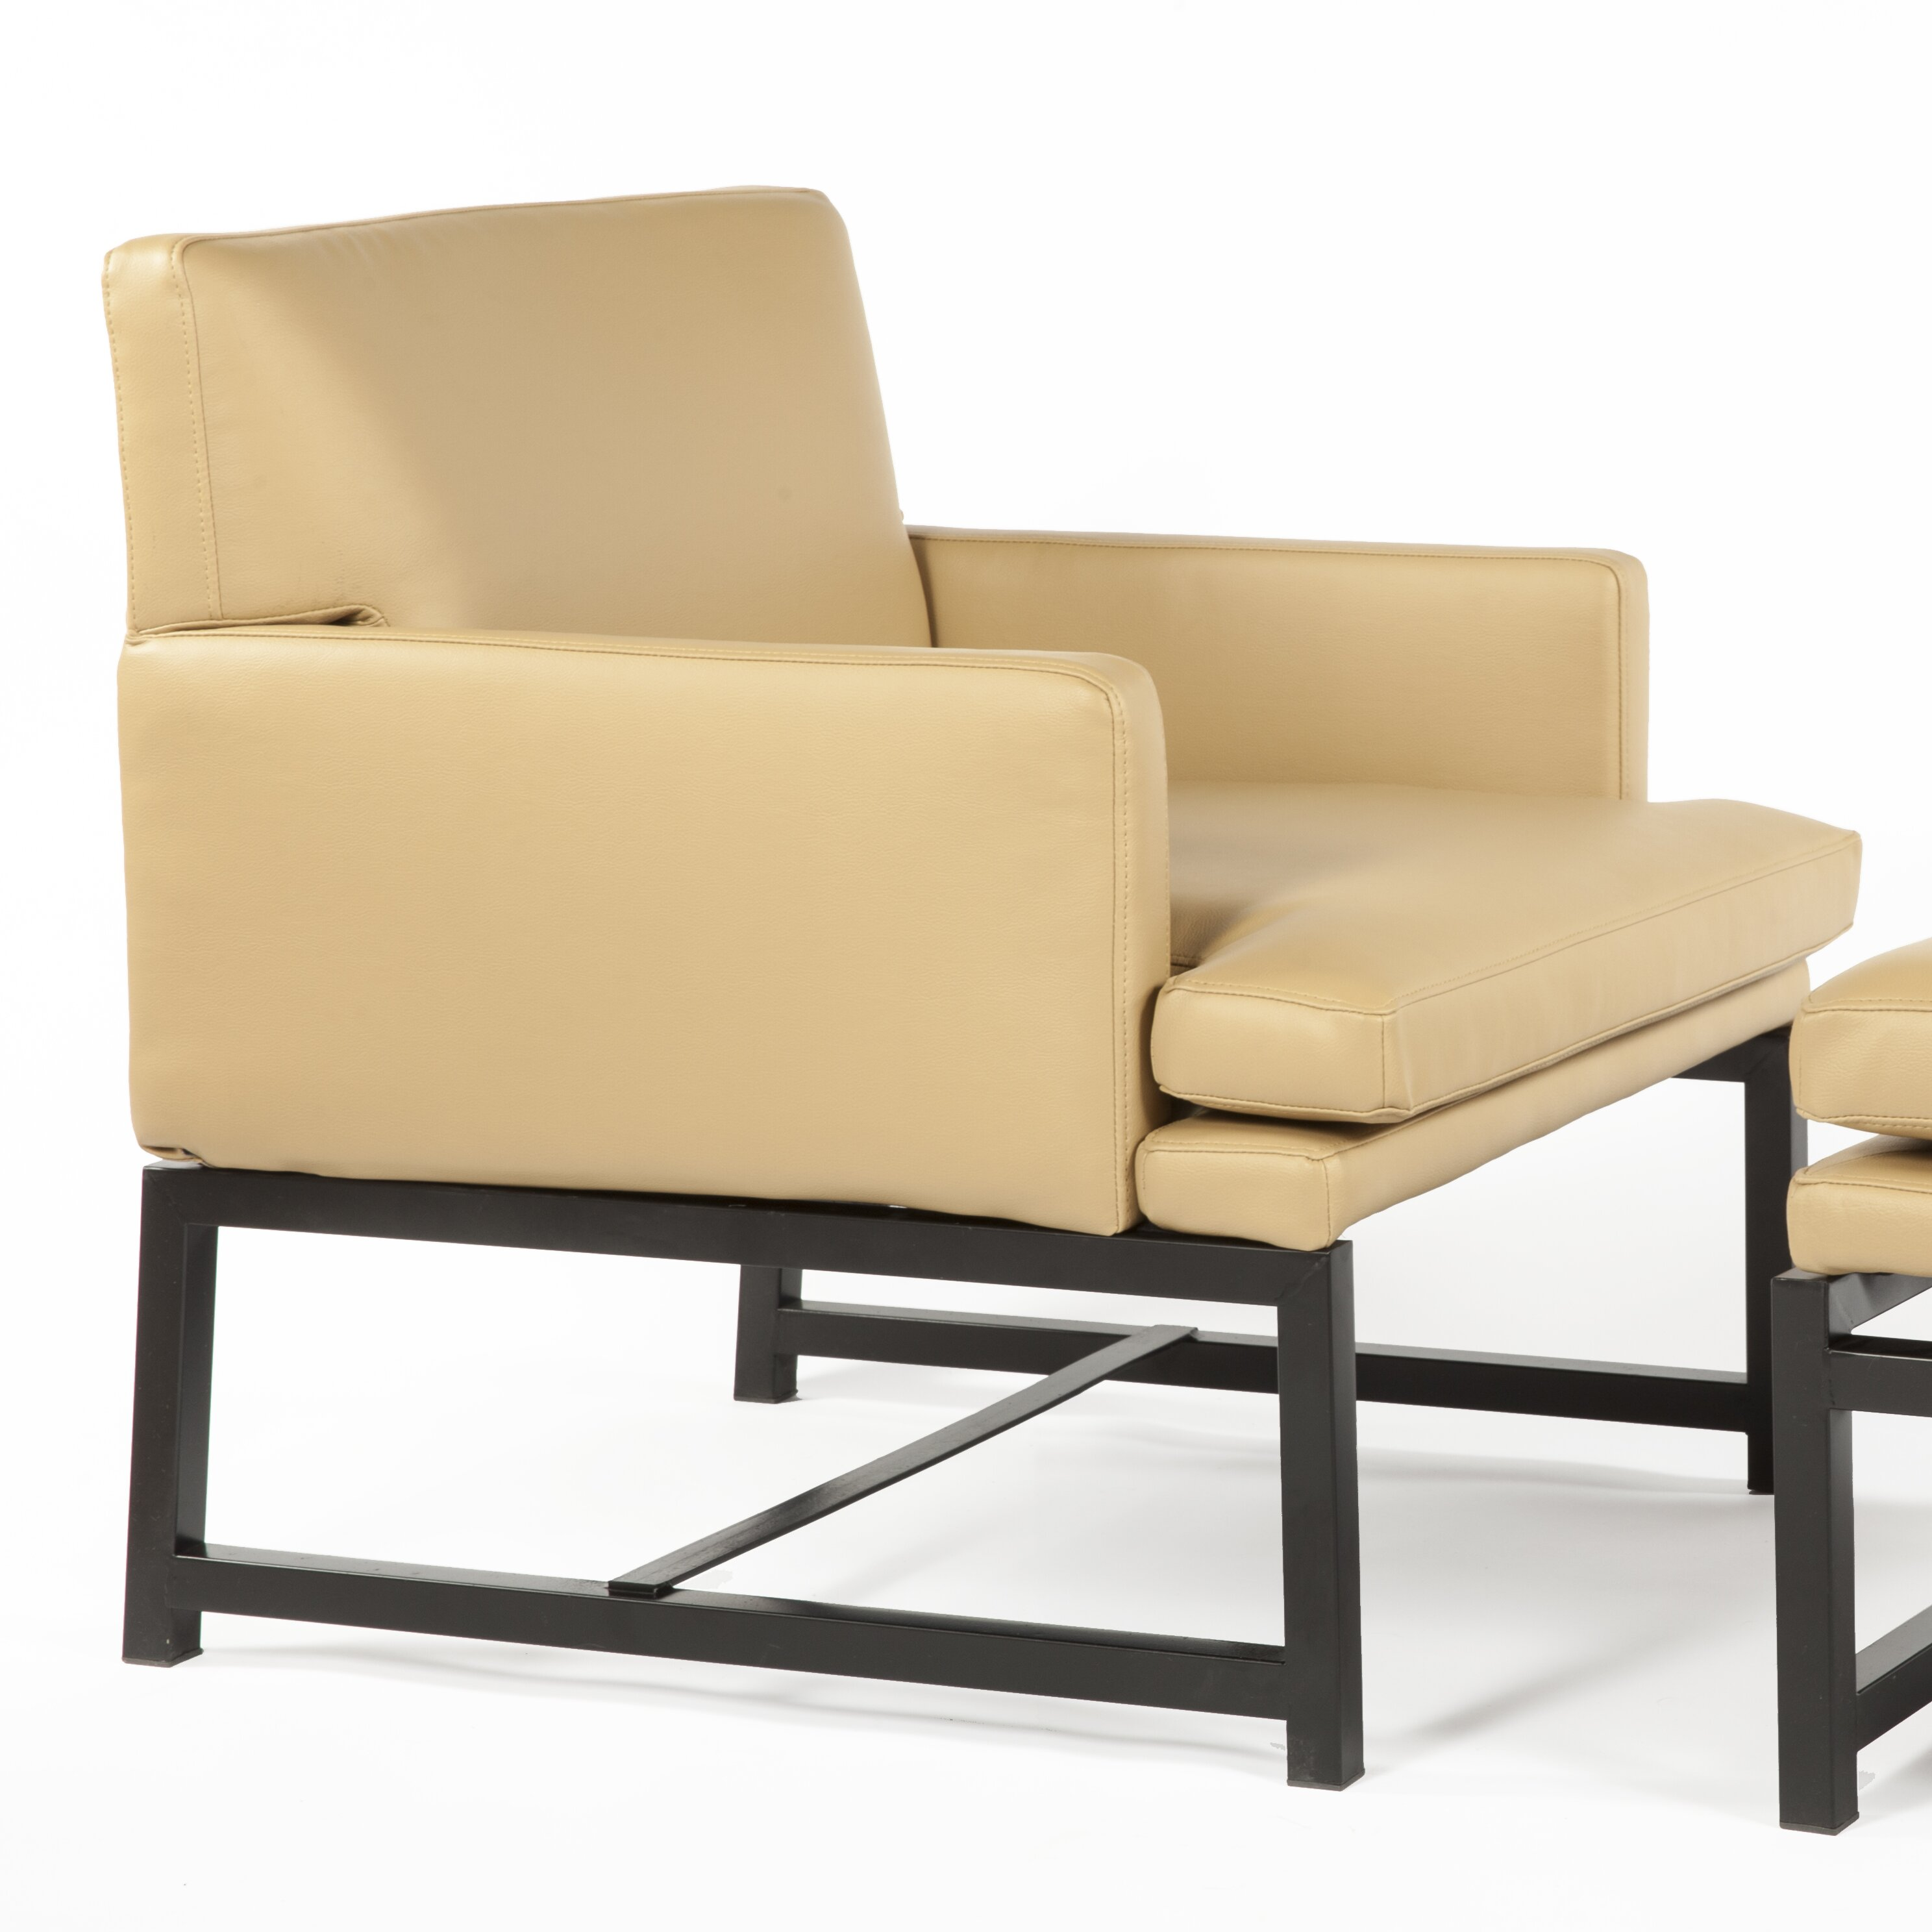 dCOR design Kuopio Lounge Chair